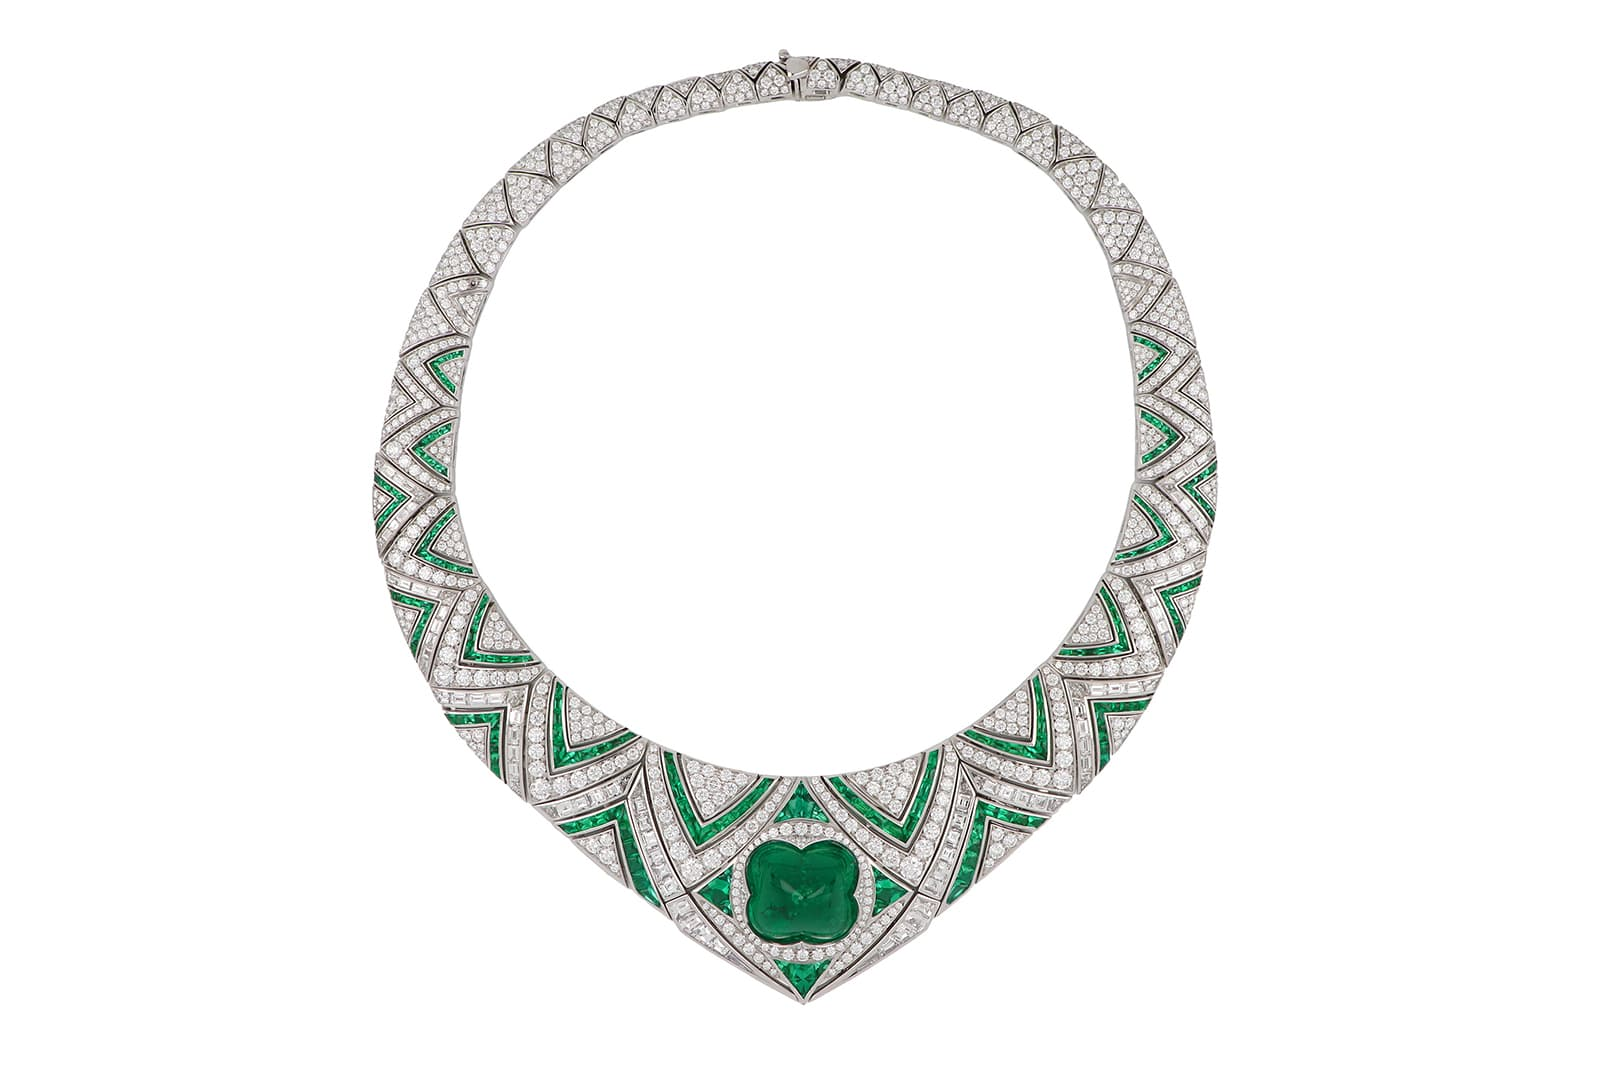 Bvlgari Barocko Cupola high jewellery necklace starring a 32.88 carat sugarloaf cabochon emerald